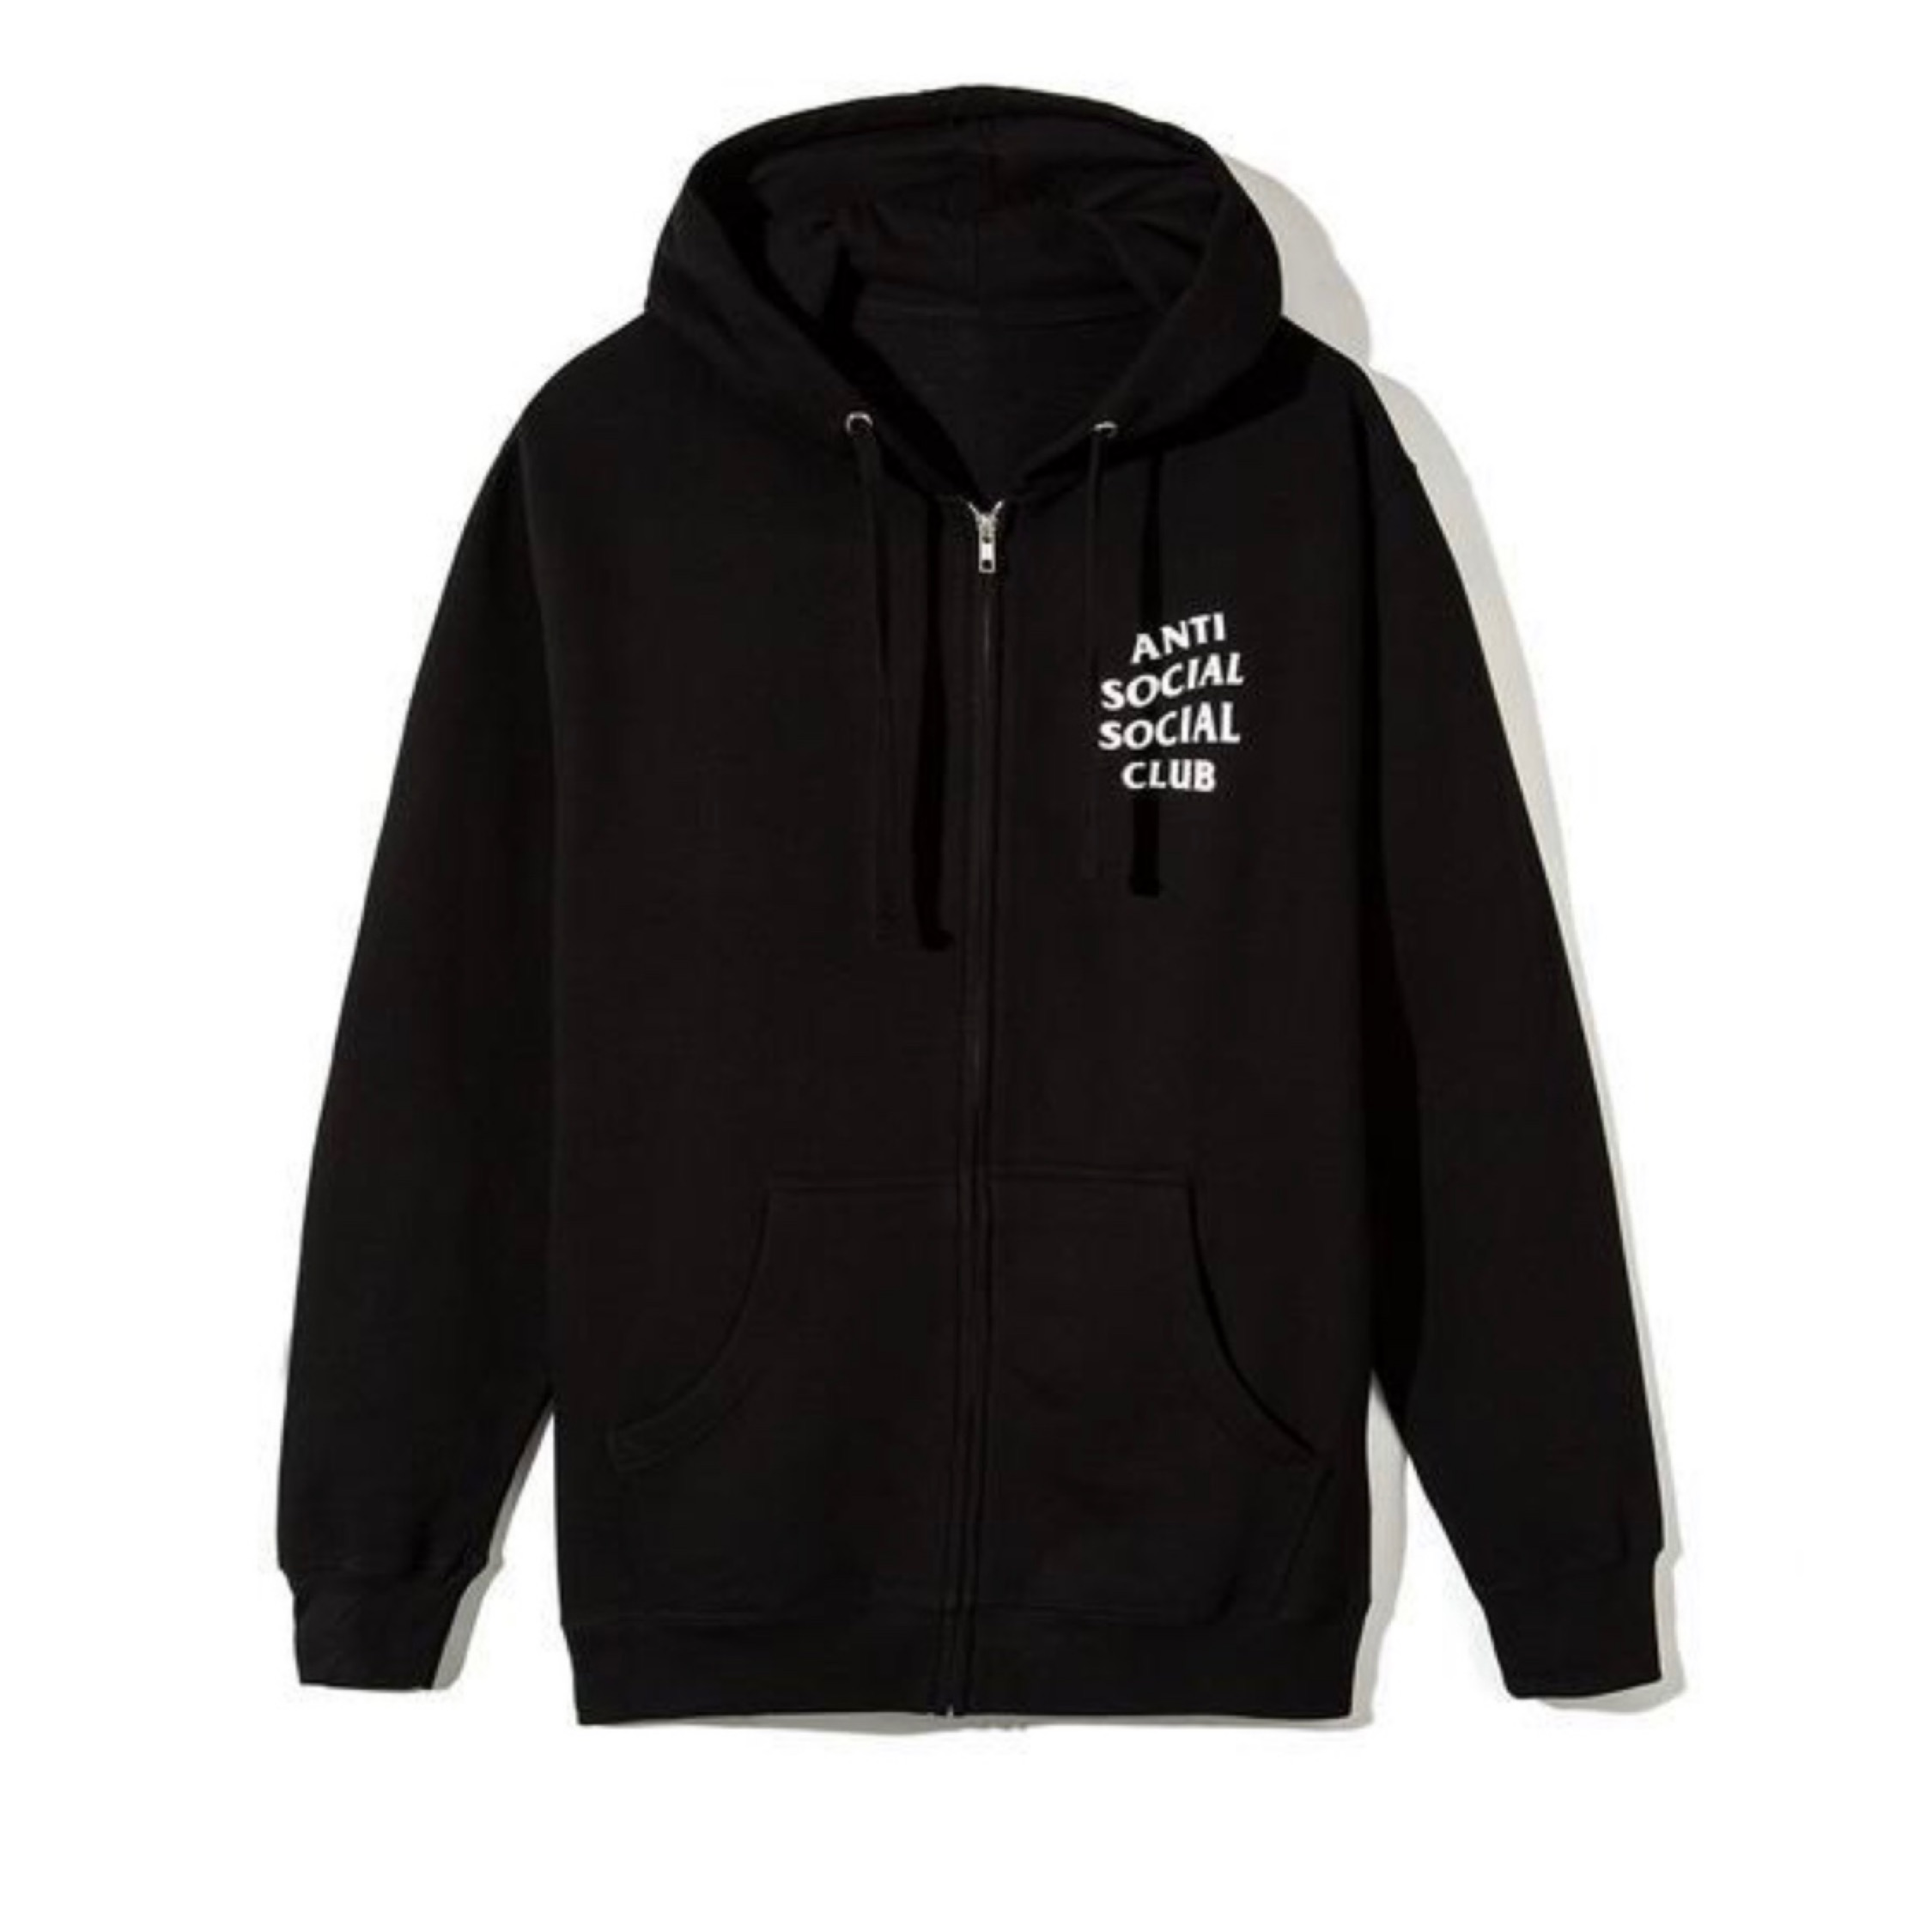 Anti Social Social Club Black Zipper